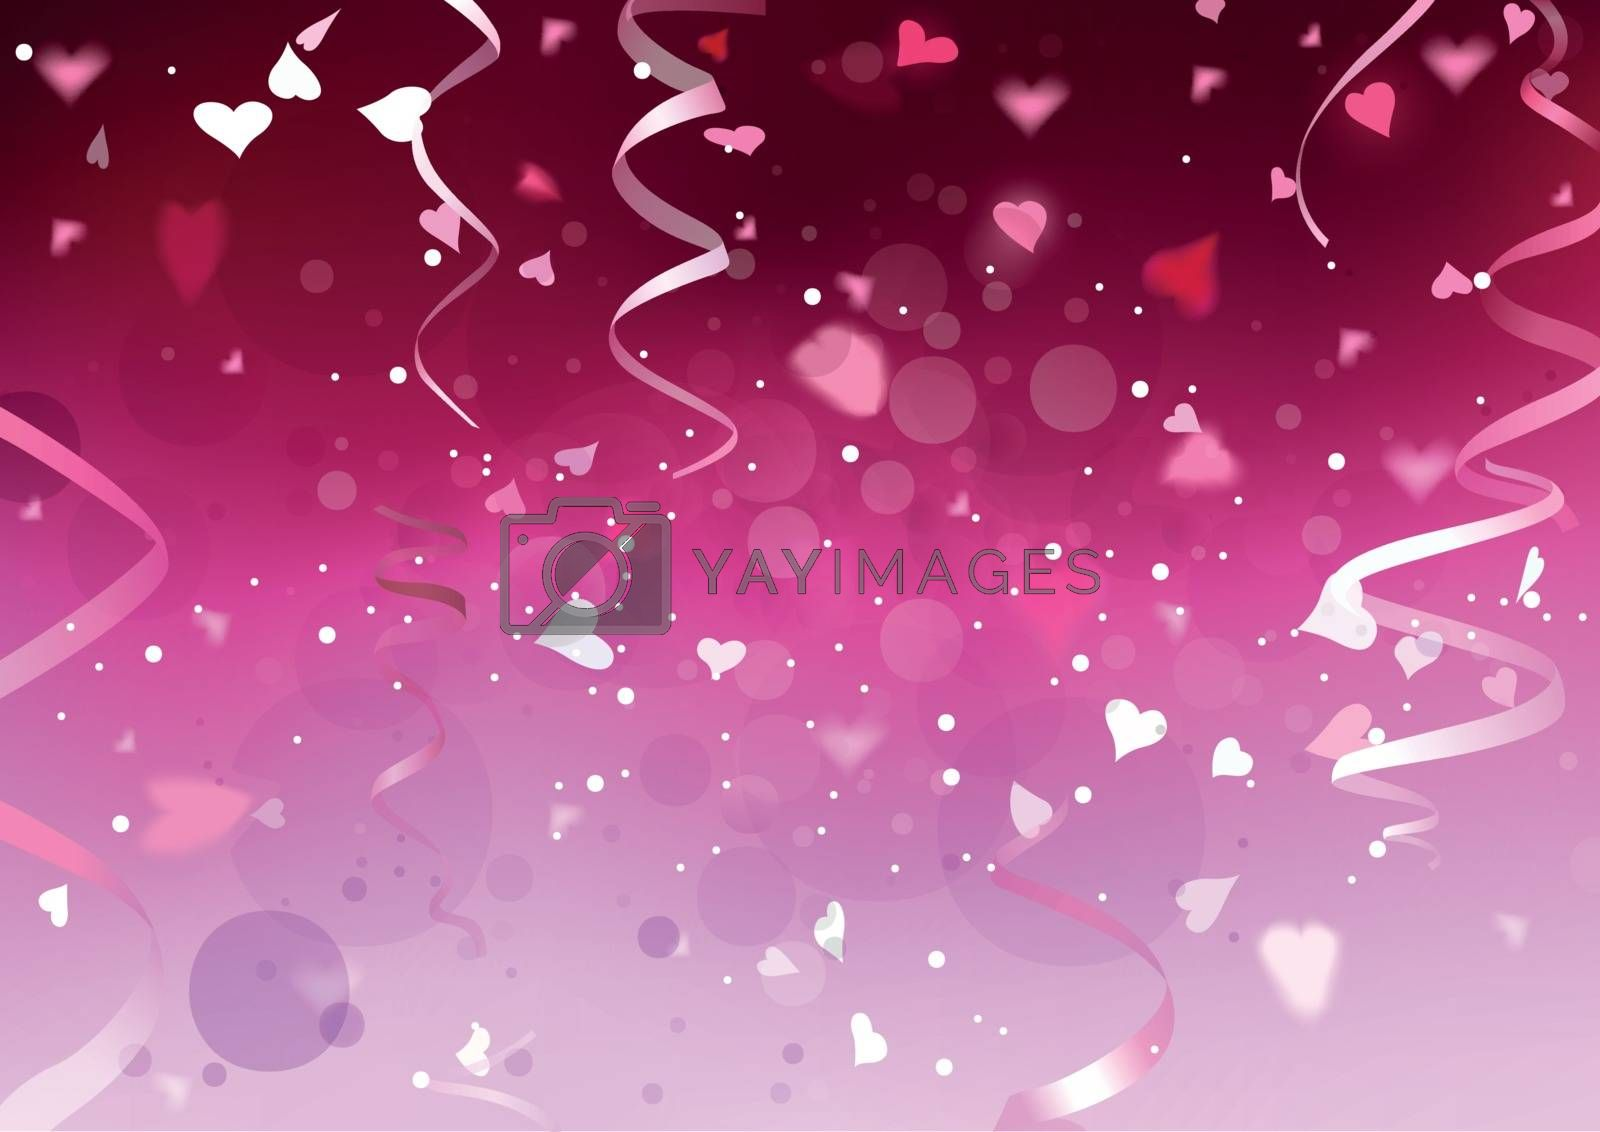 Celebration Background - Holiday Background Illustration, Vector